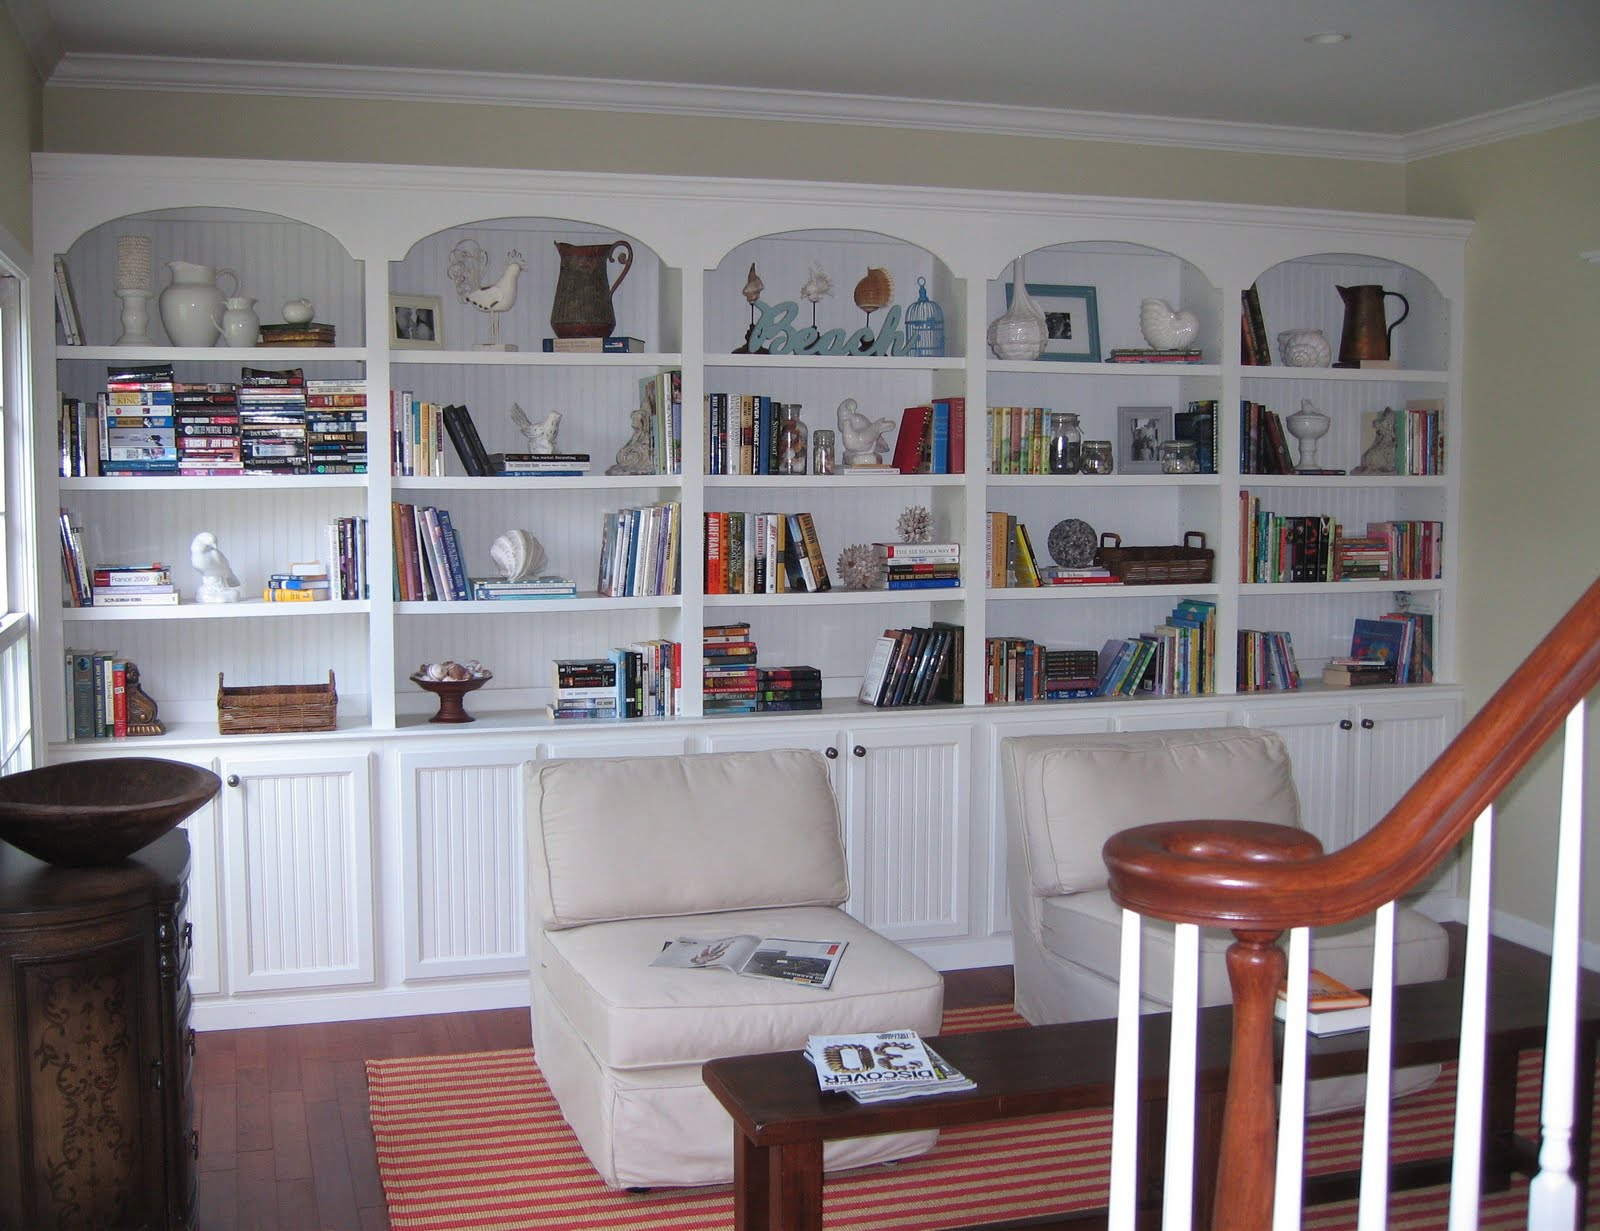 *I painted the bookshelves and trim the same colors as the trim and  cabinets in the rest of the house and you can find that info on my Q and A  Page.